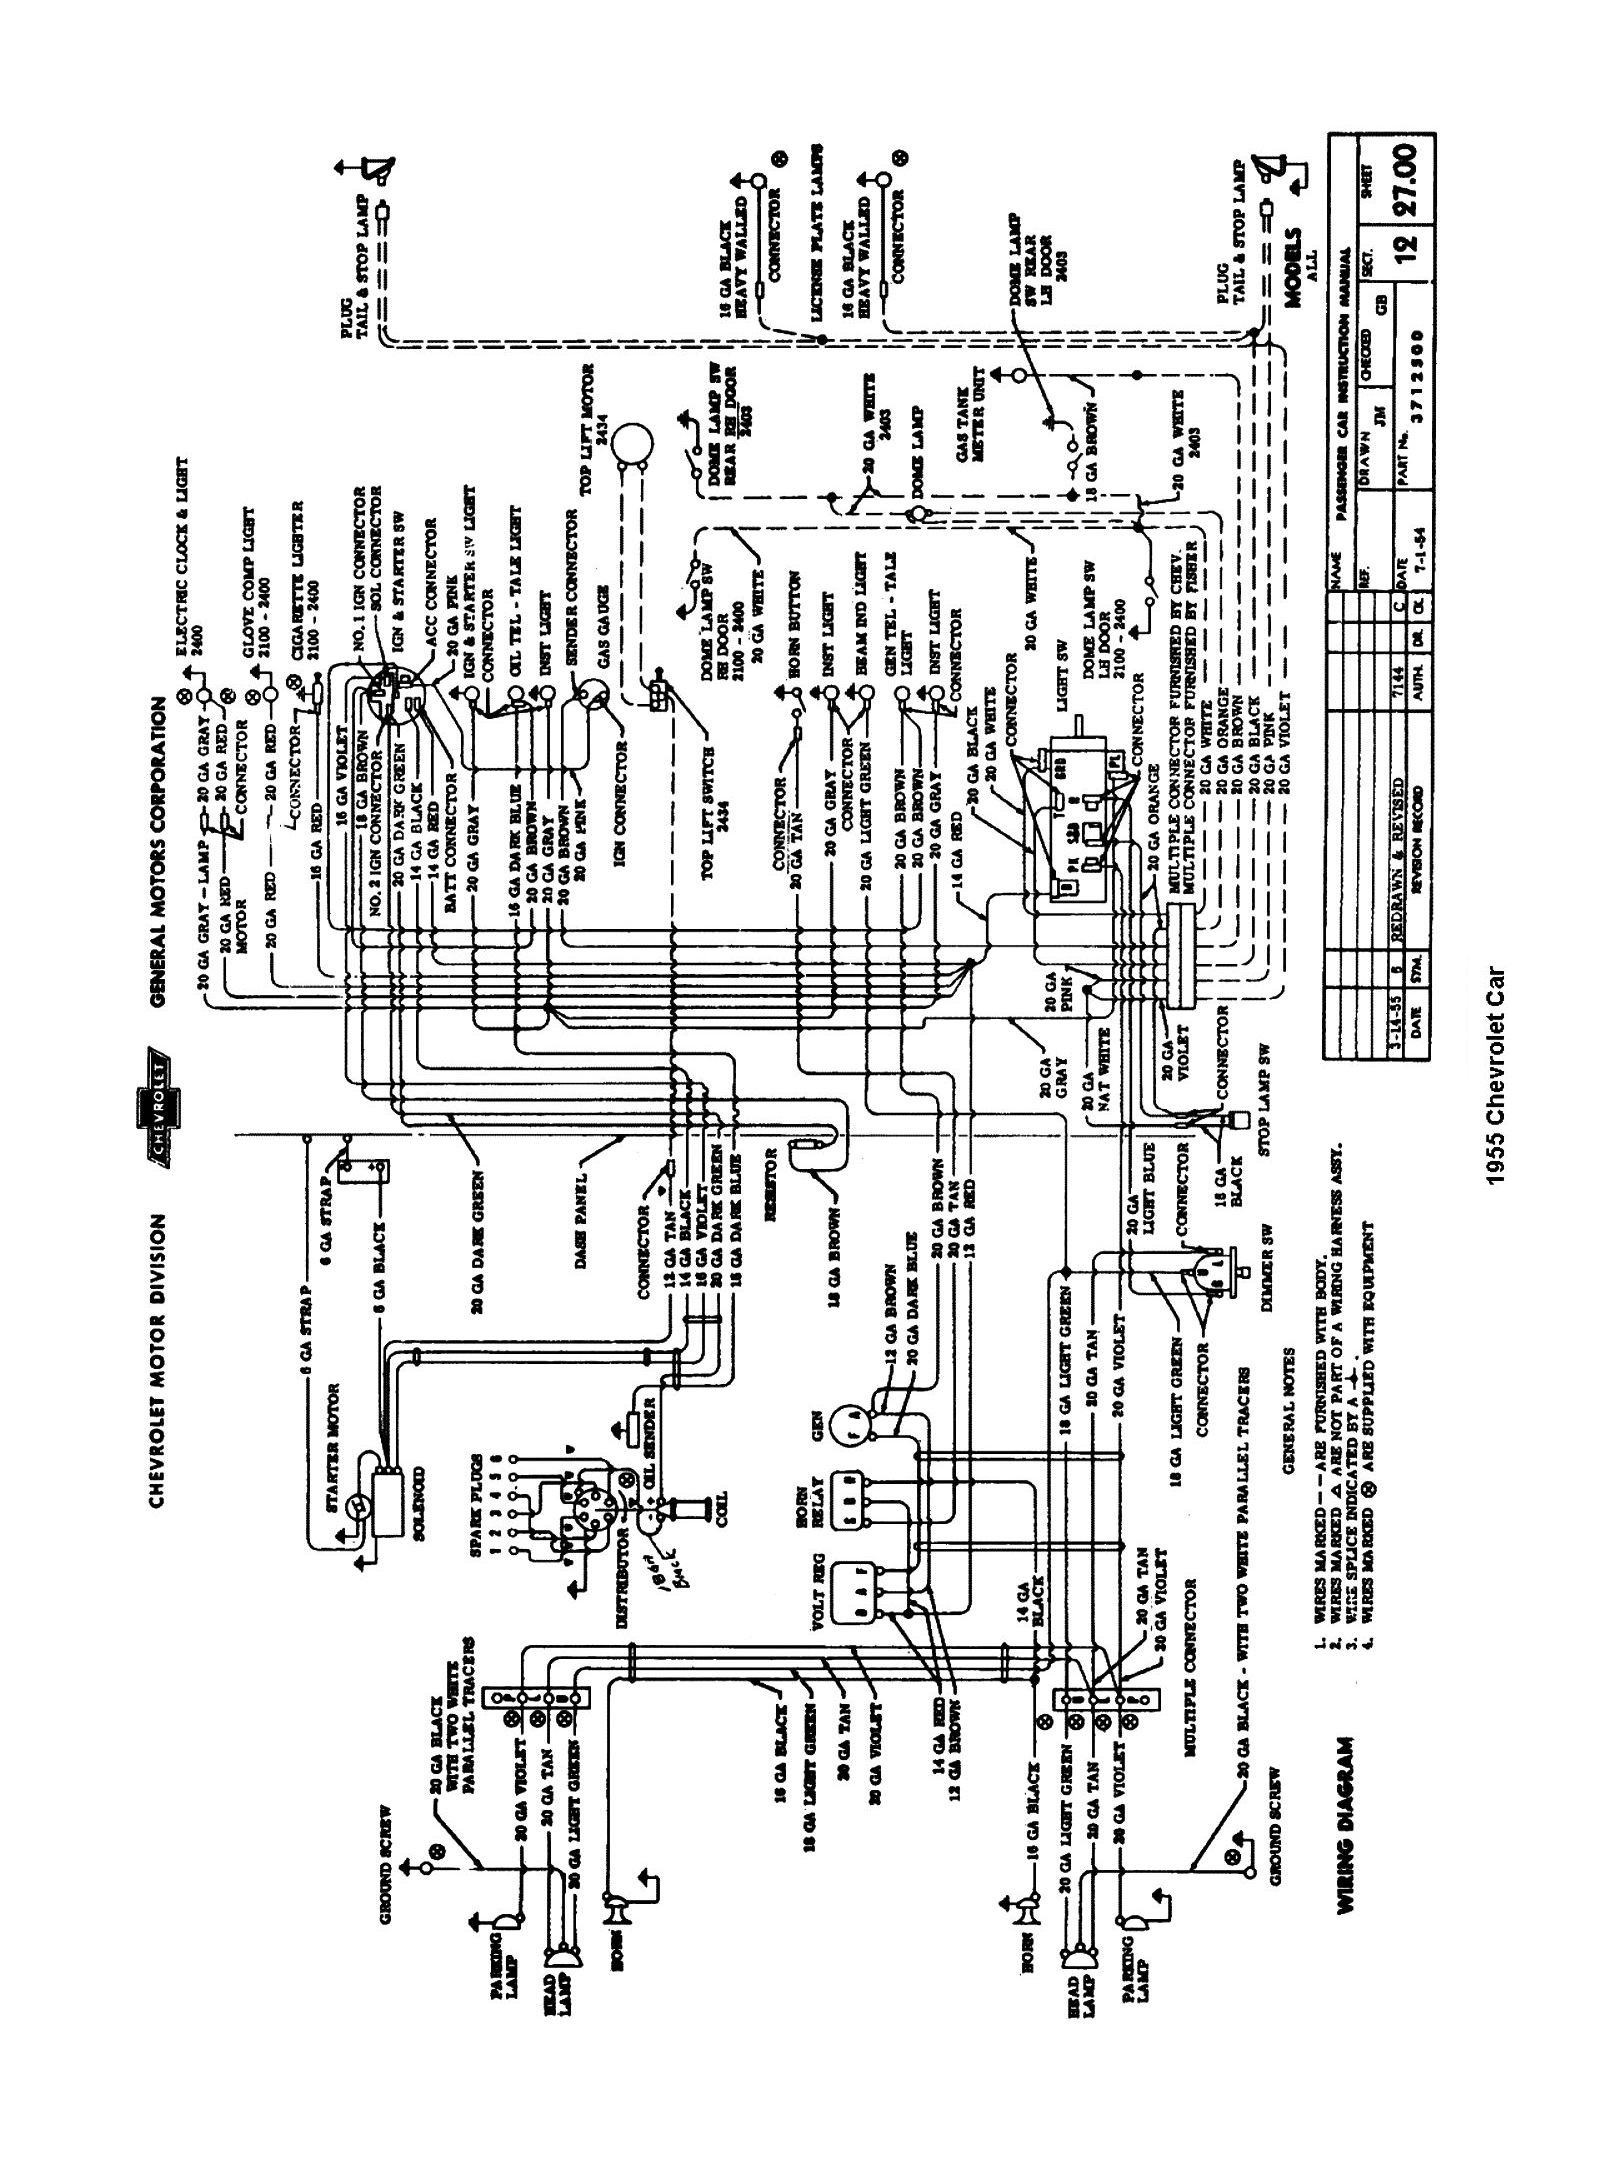 Chevy Delco Radio Schematic